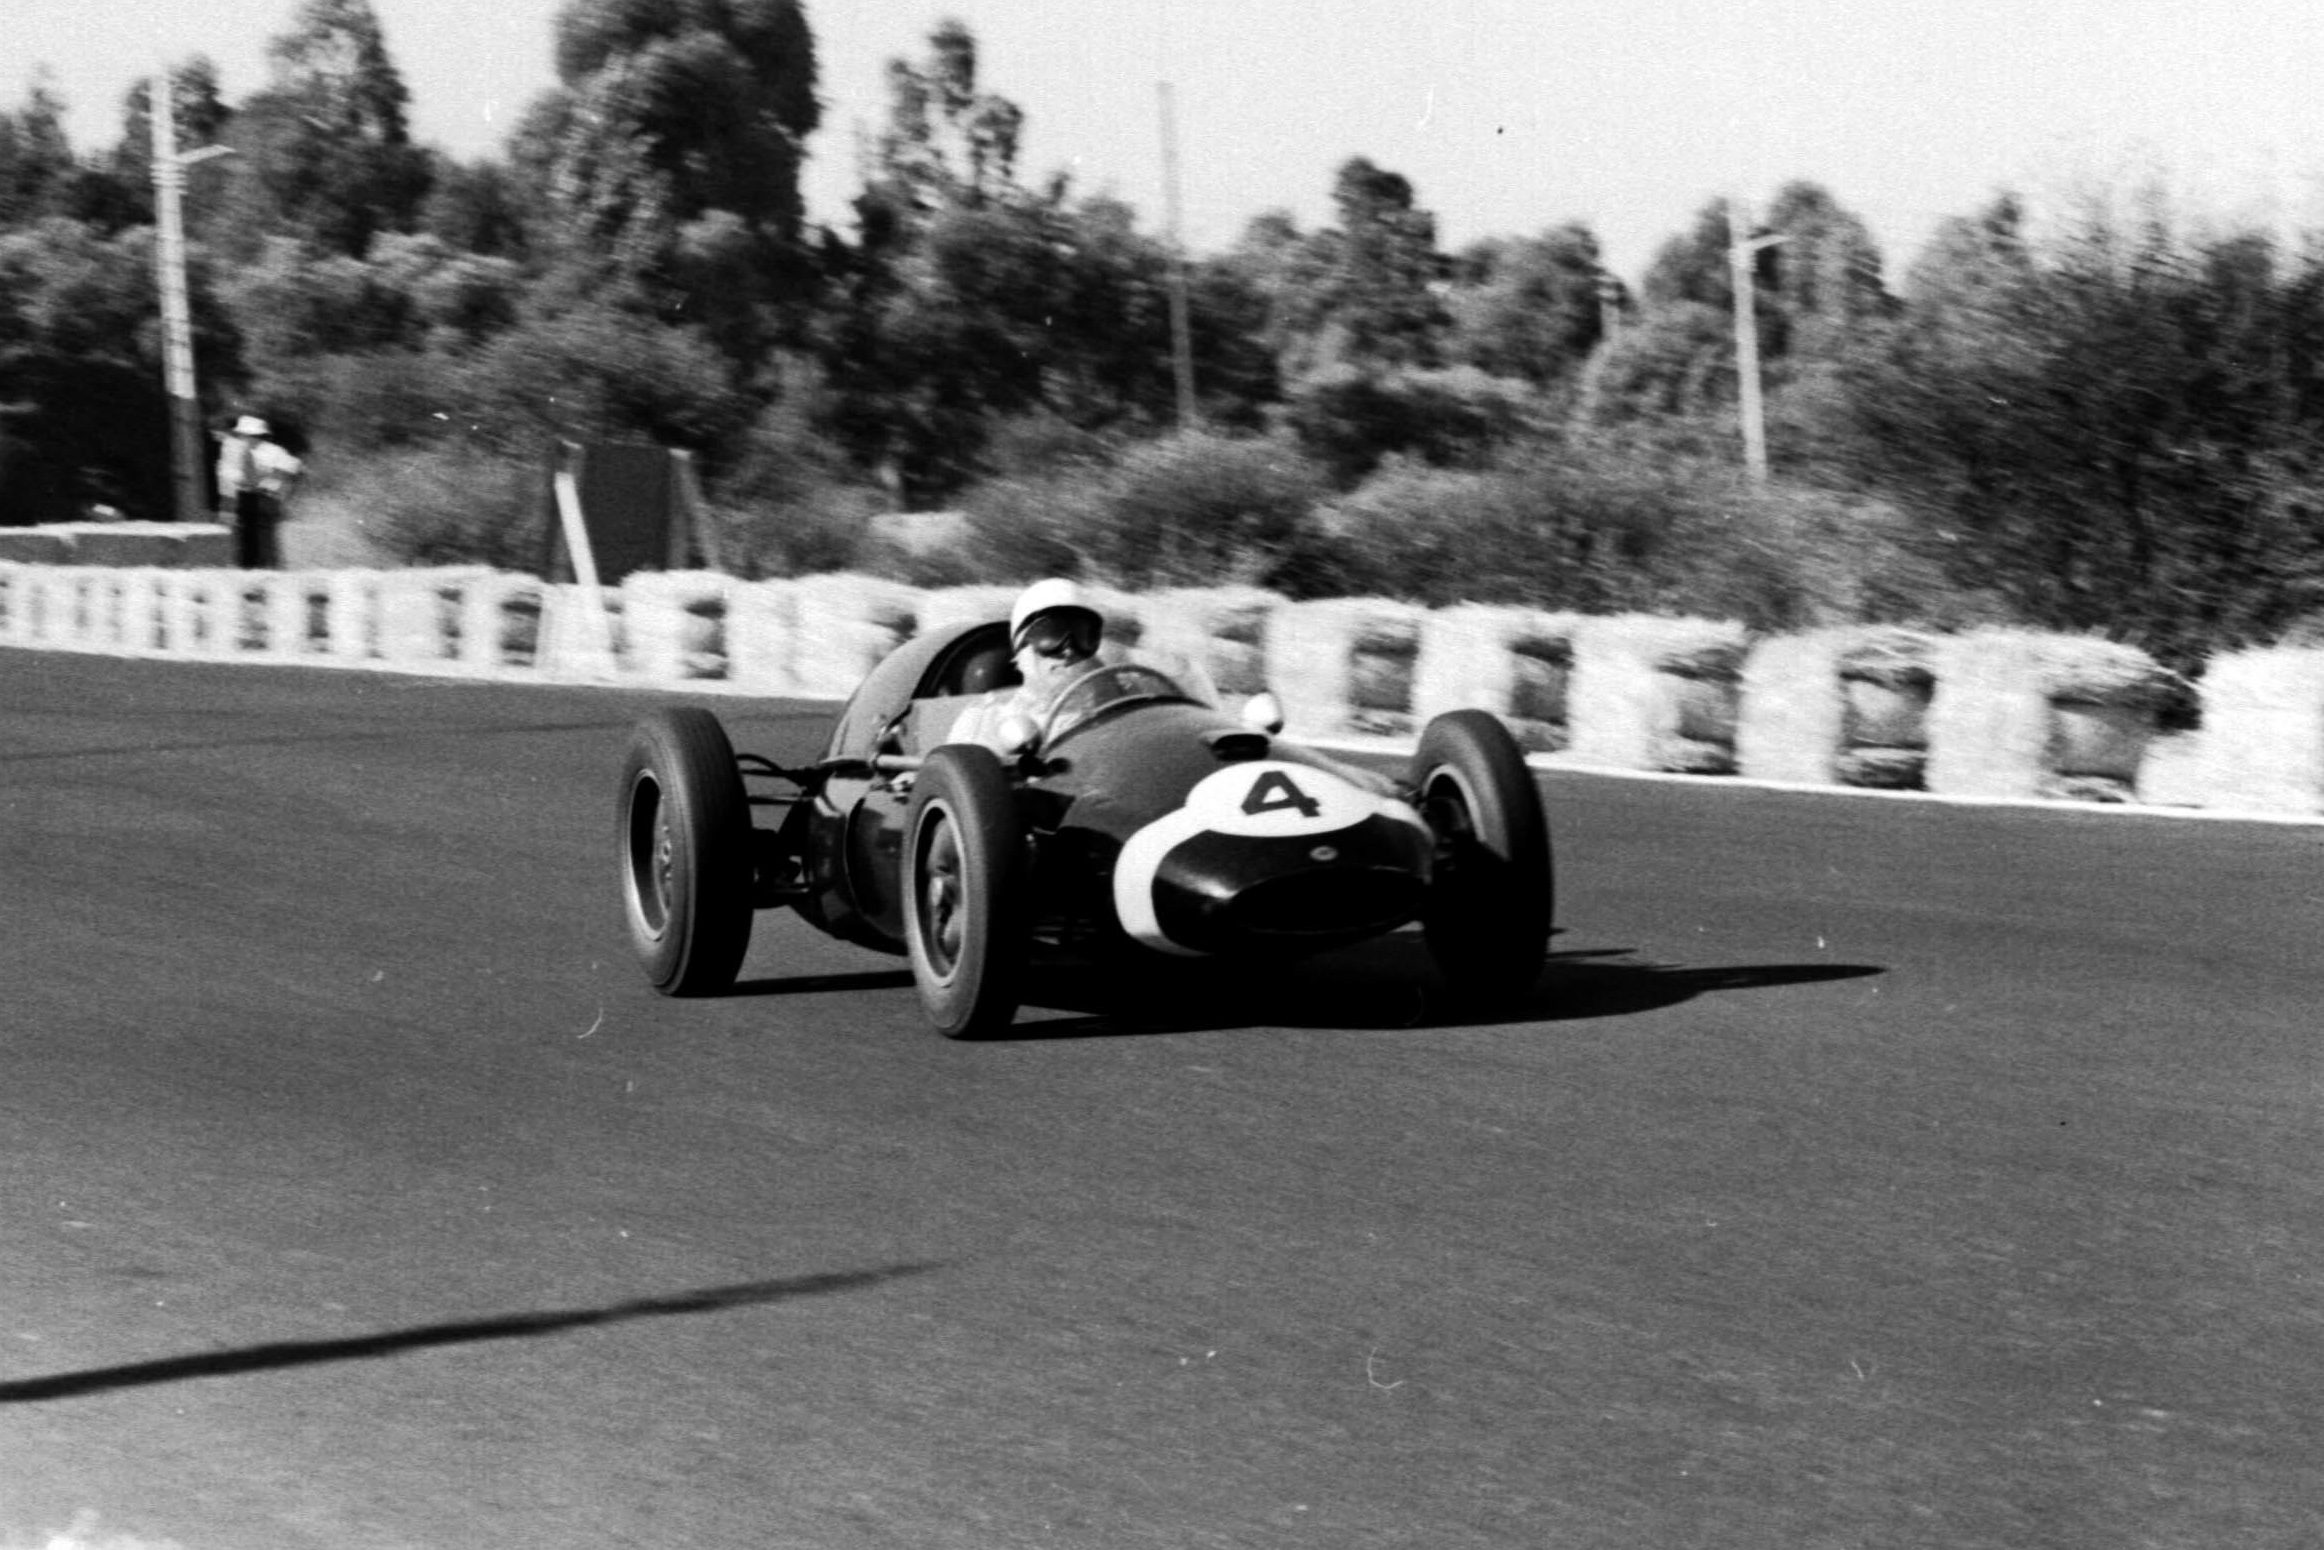 Stirling Moss in his Cooper T51 Climax.